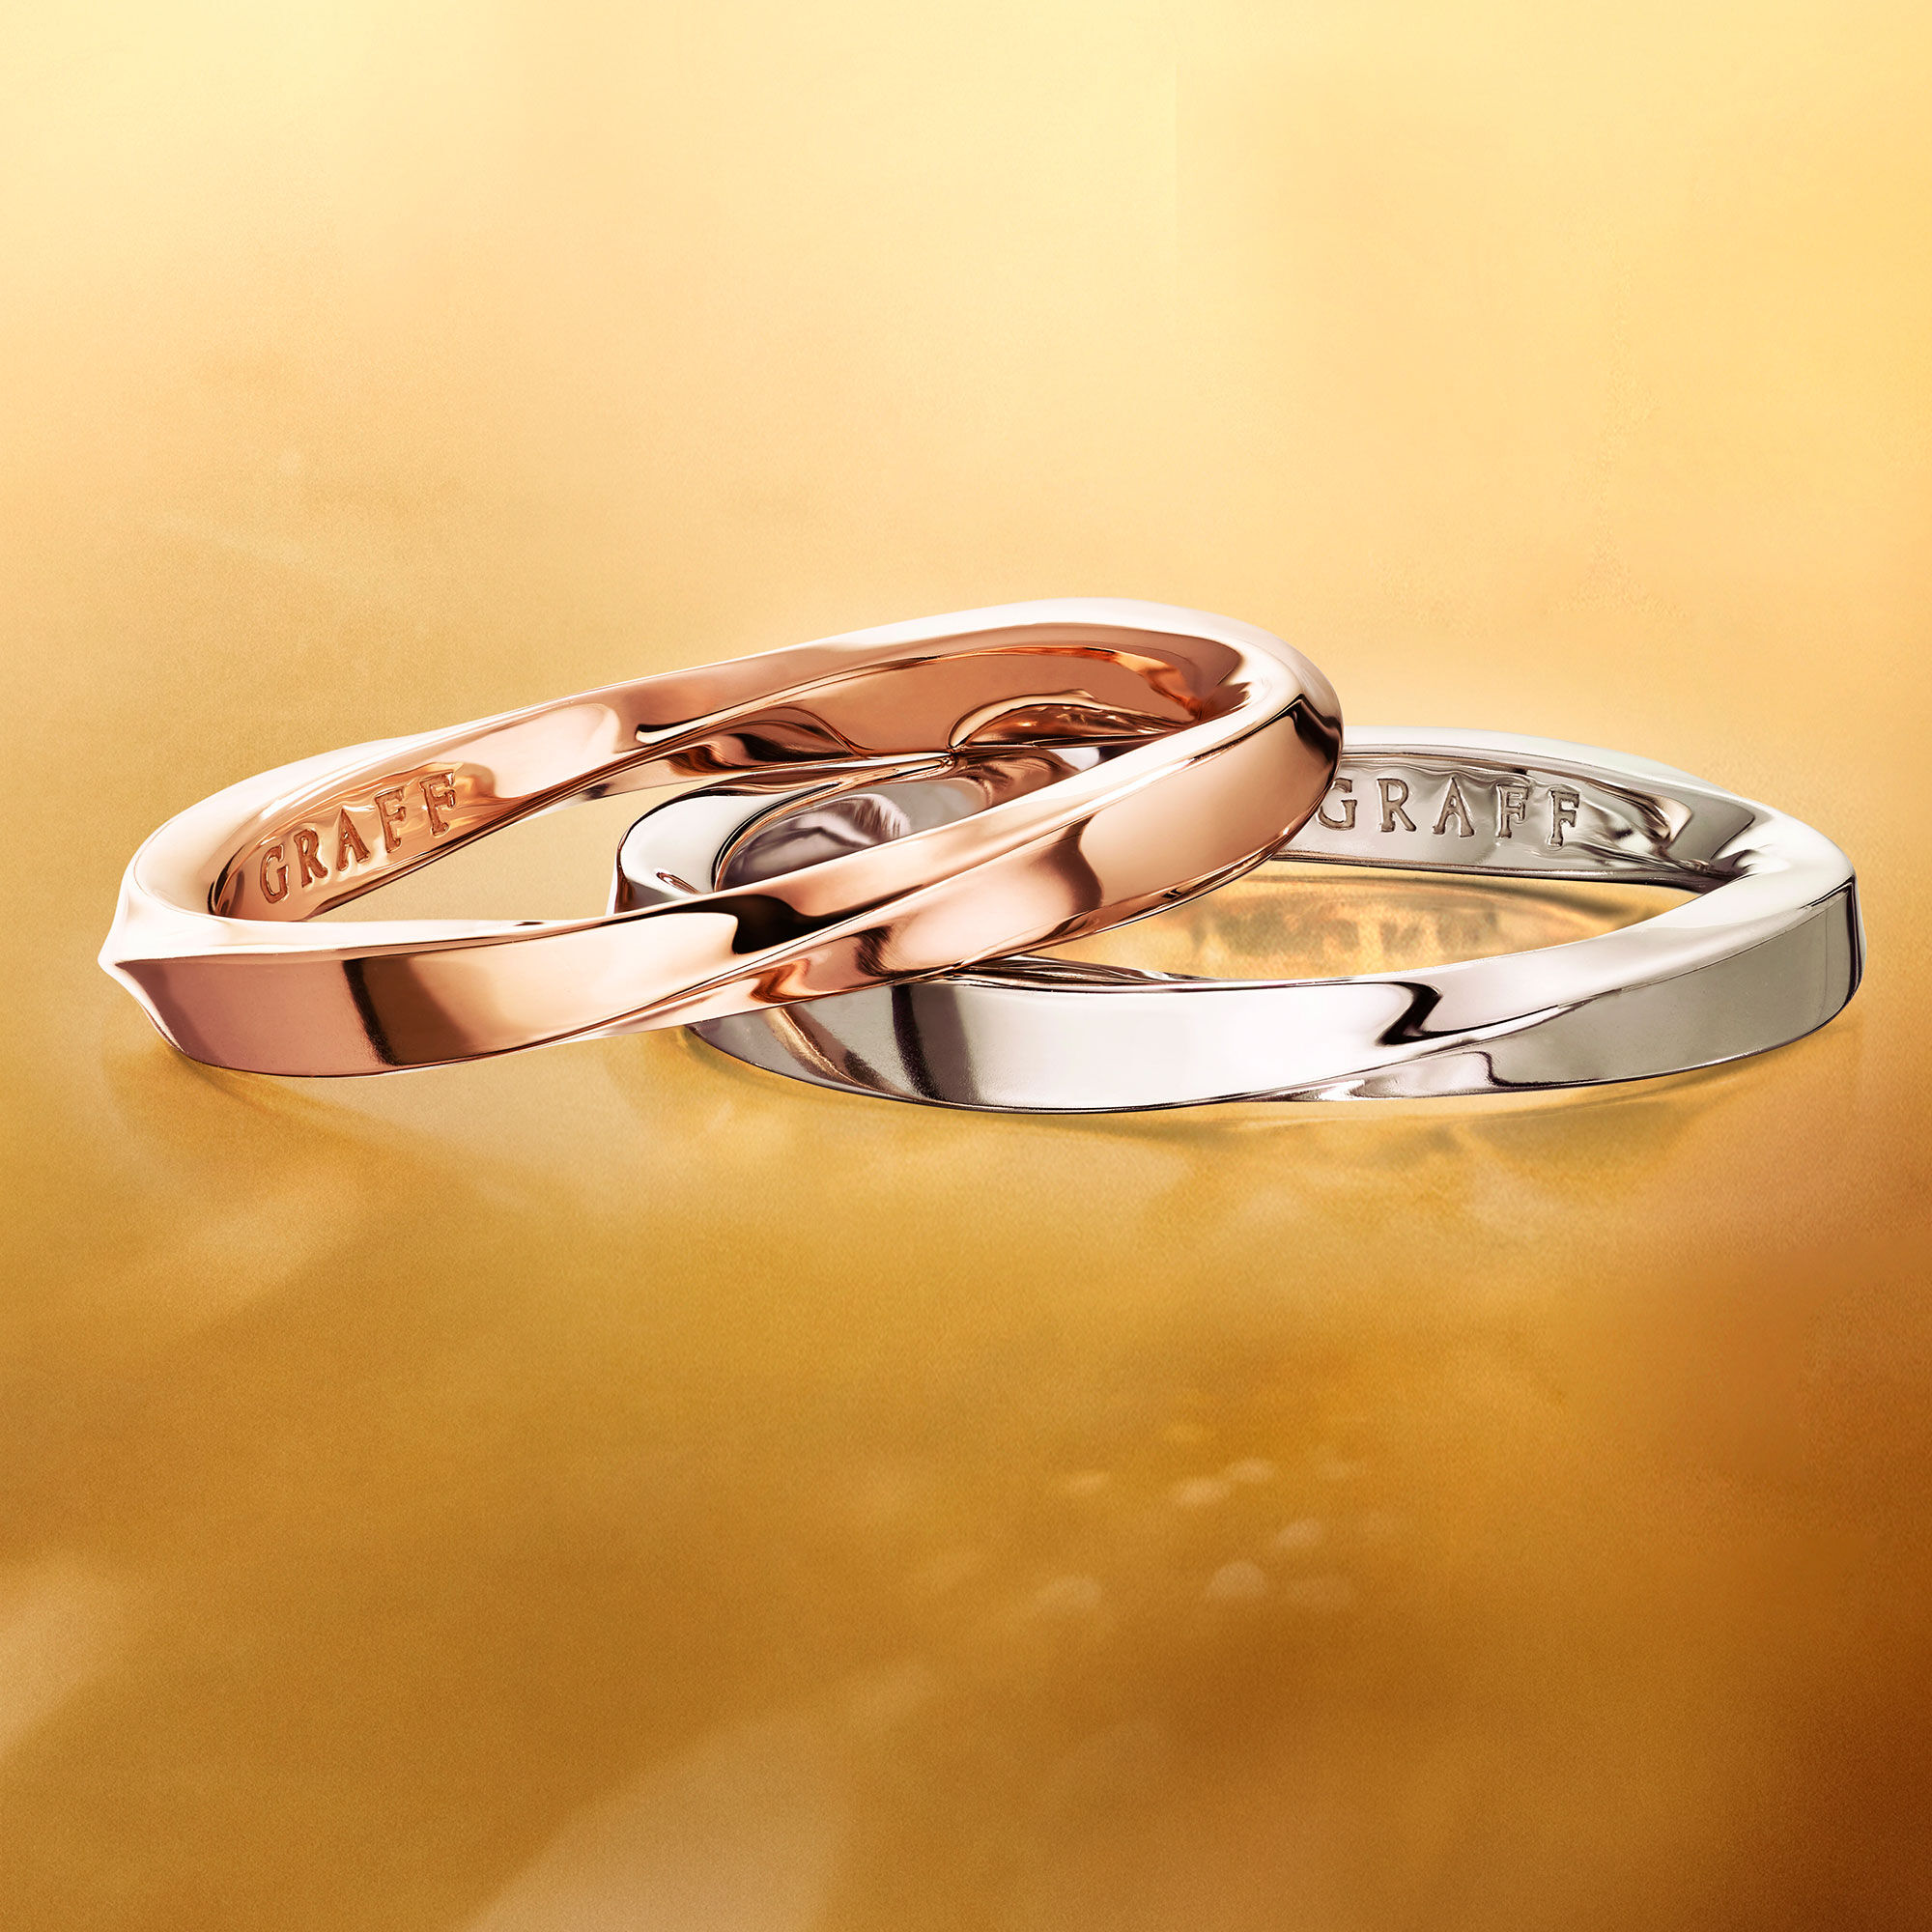 Graff Spiral jewellery collection band set in rose and white gold